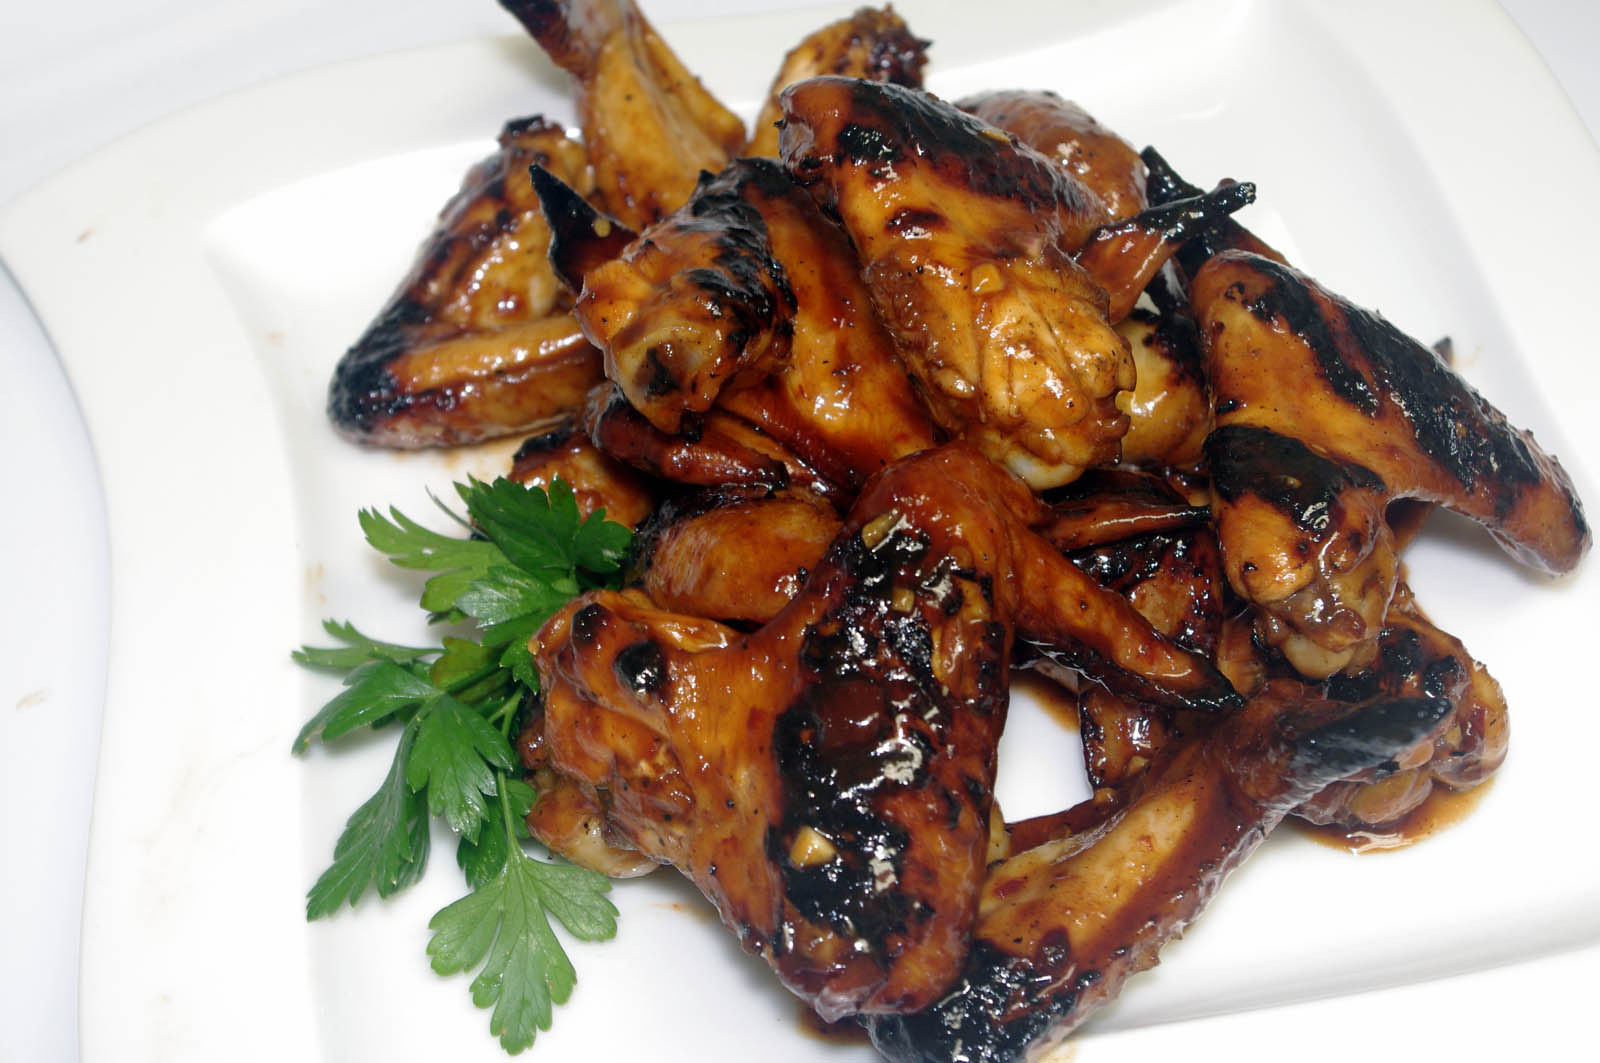 Grilled Sweet and Spicy Chicken Wings